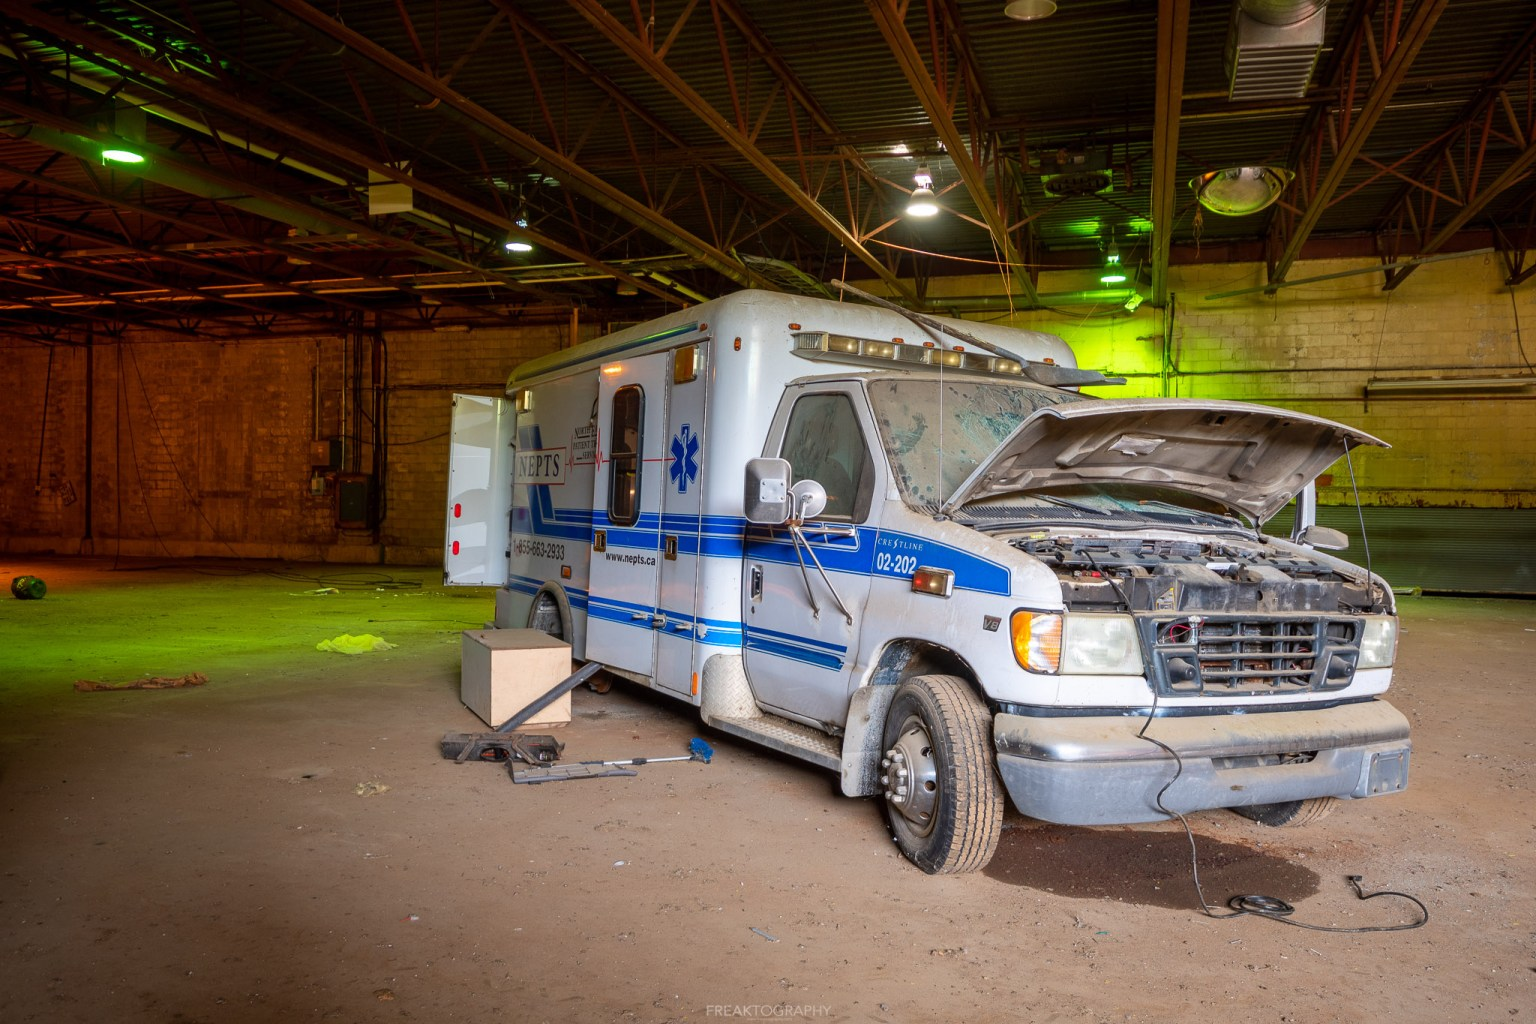 abandoned ambulance and patient transfer station